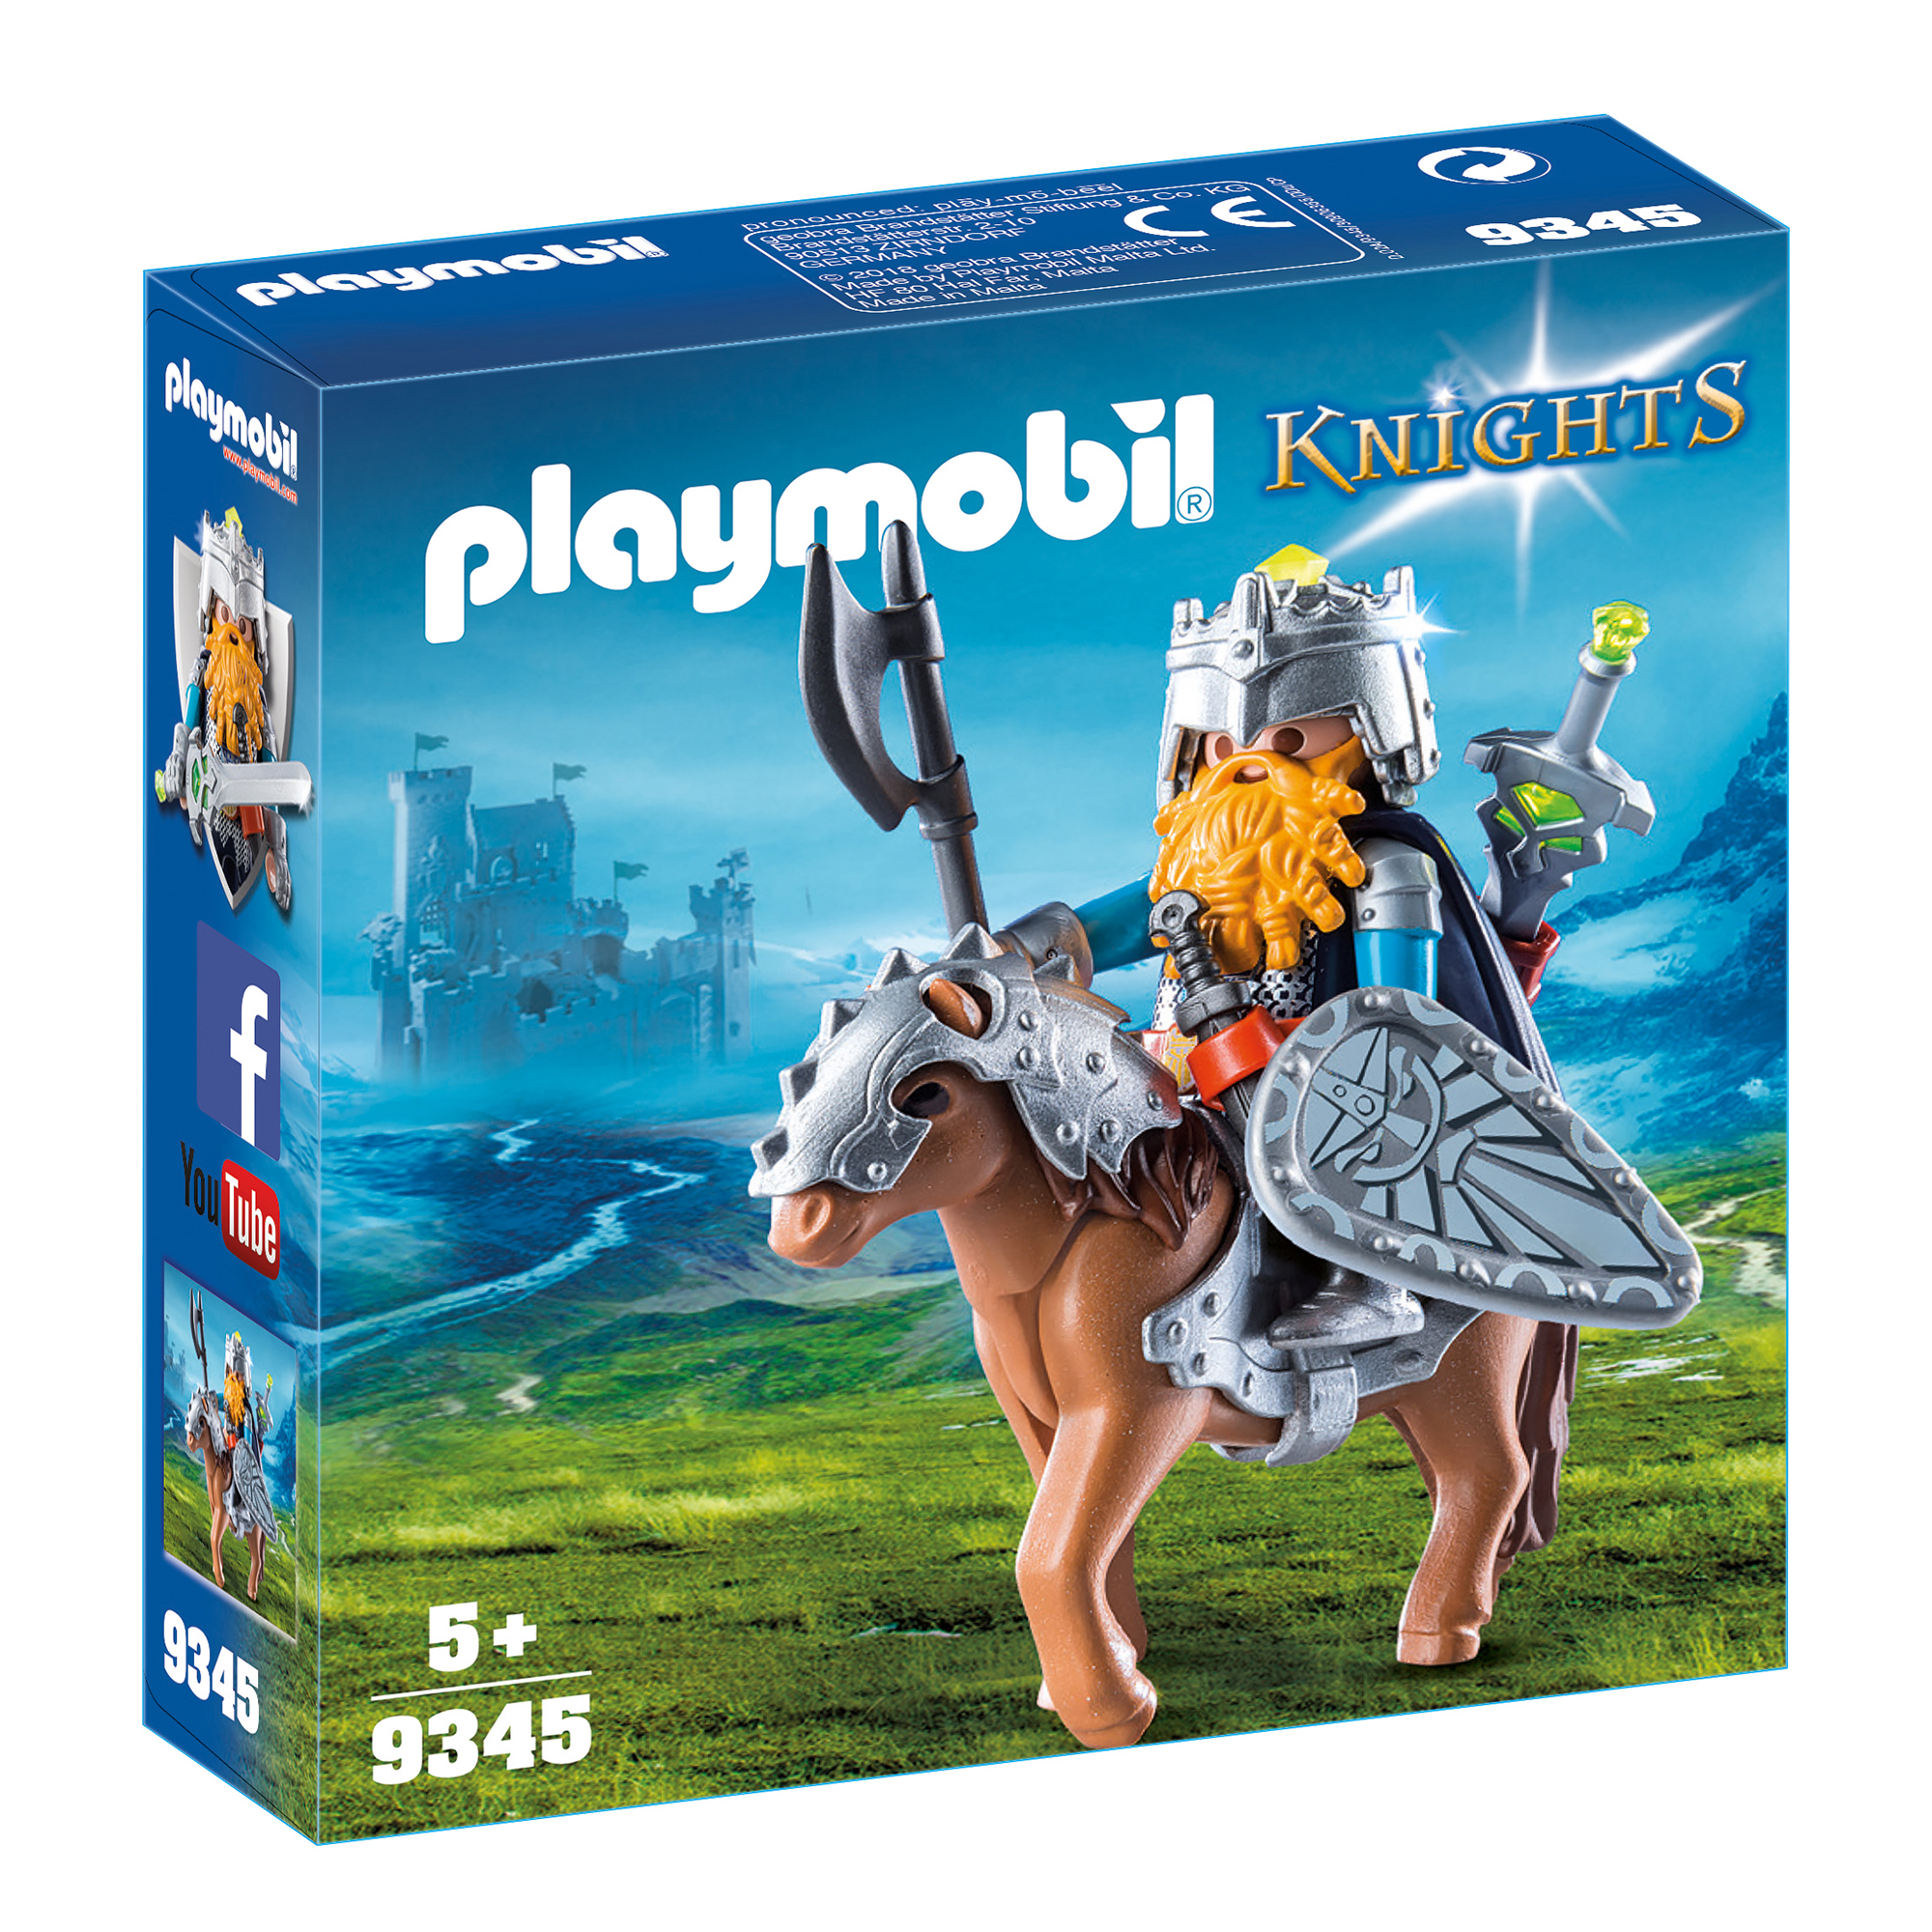 Playmobil 9345 Knights Dwarf Fighter With Pony With Removeable Armour